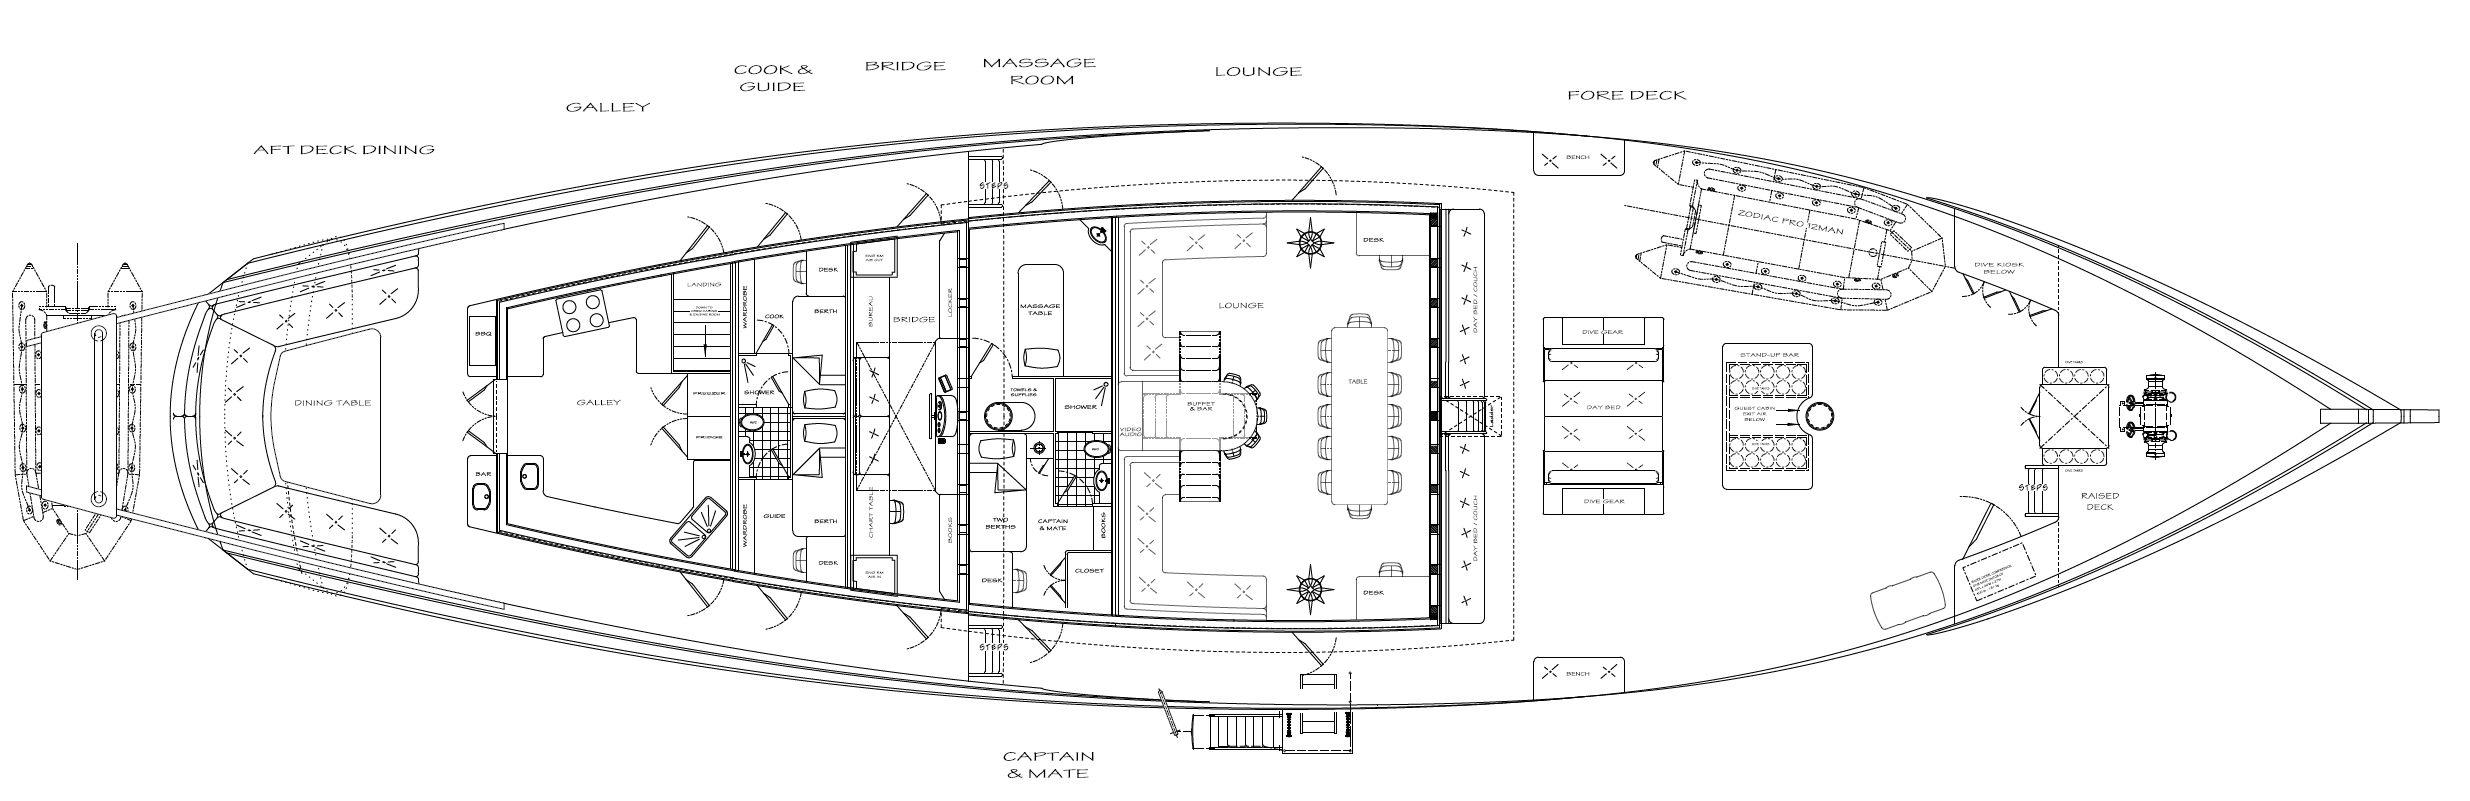 36m Lombok Privateer Deck Plan - Kasten Marine Design, Inc.